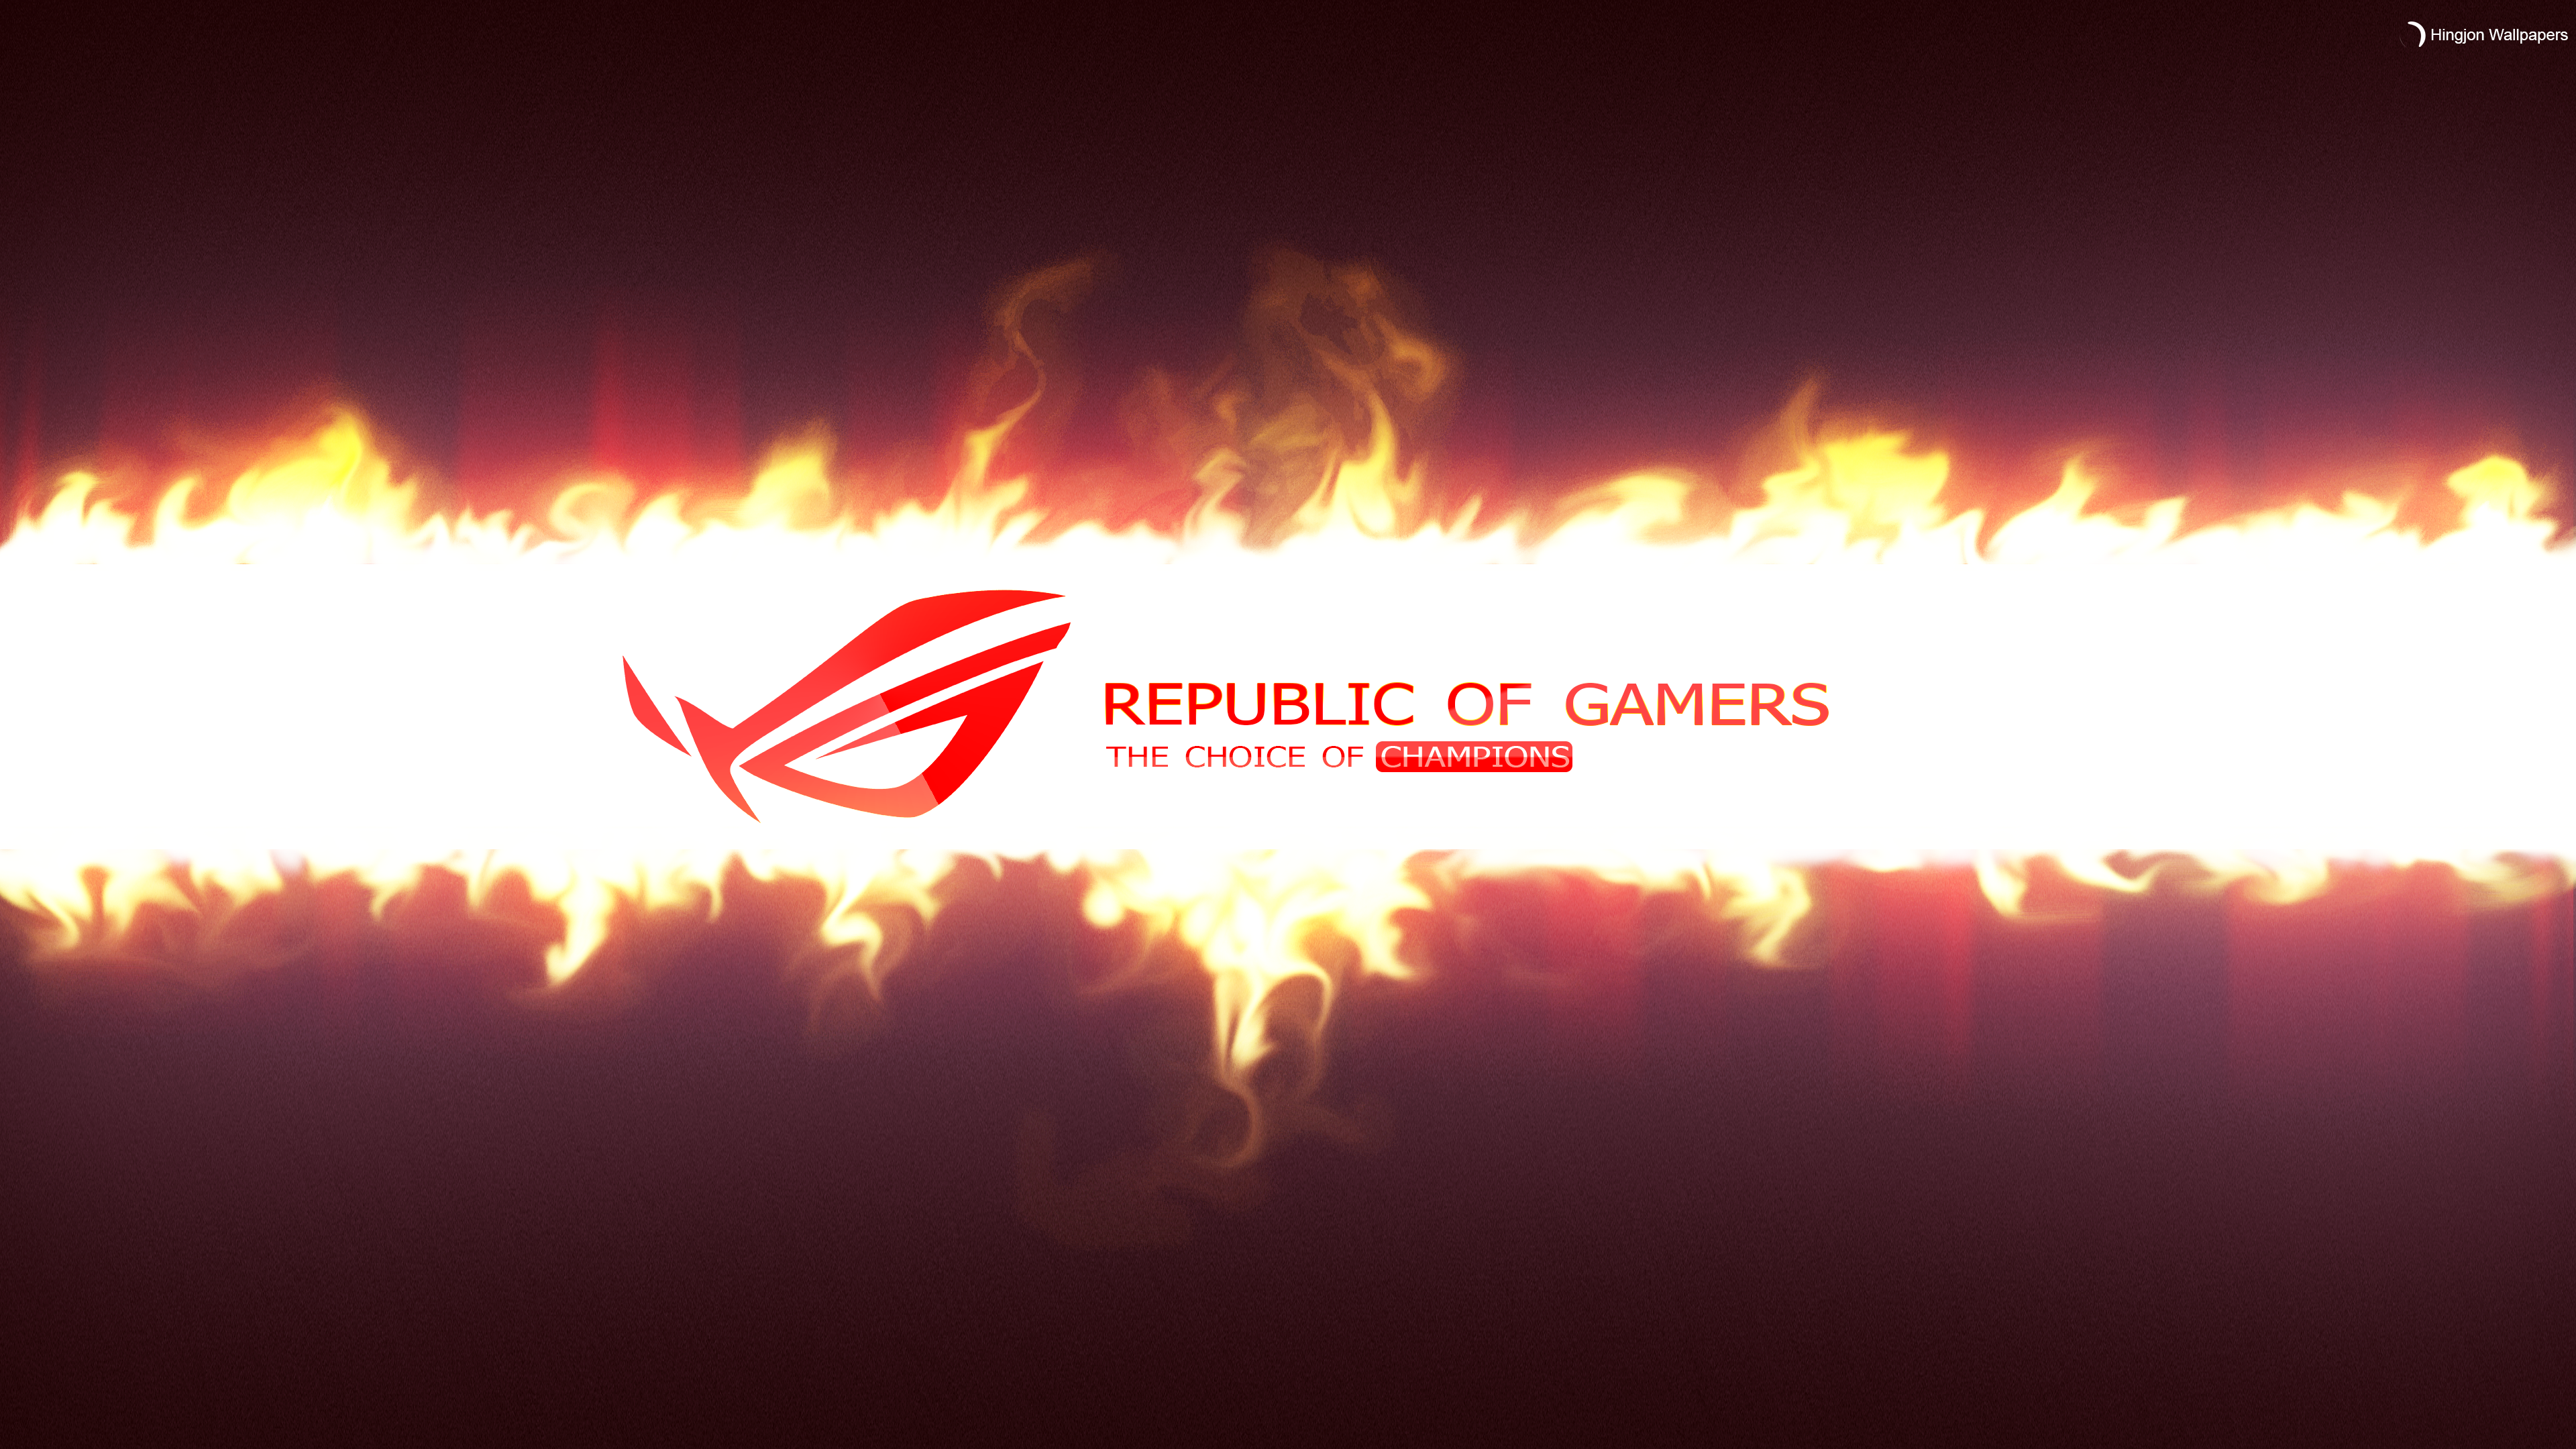 gamers wallpaper 4k